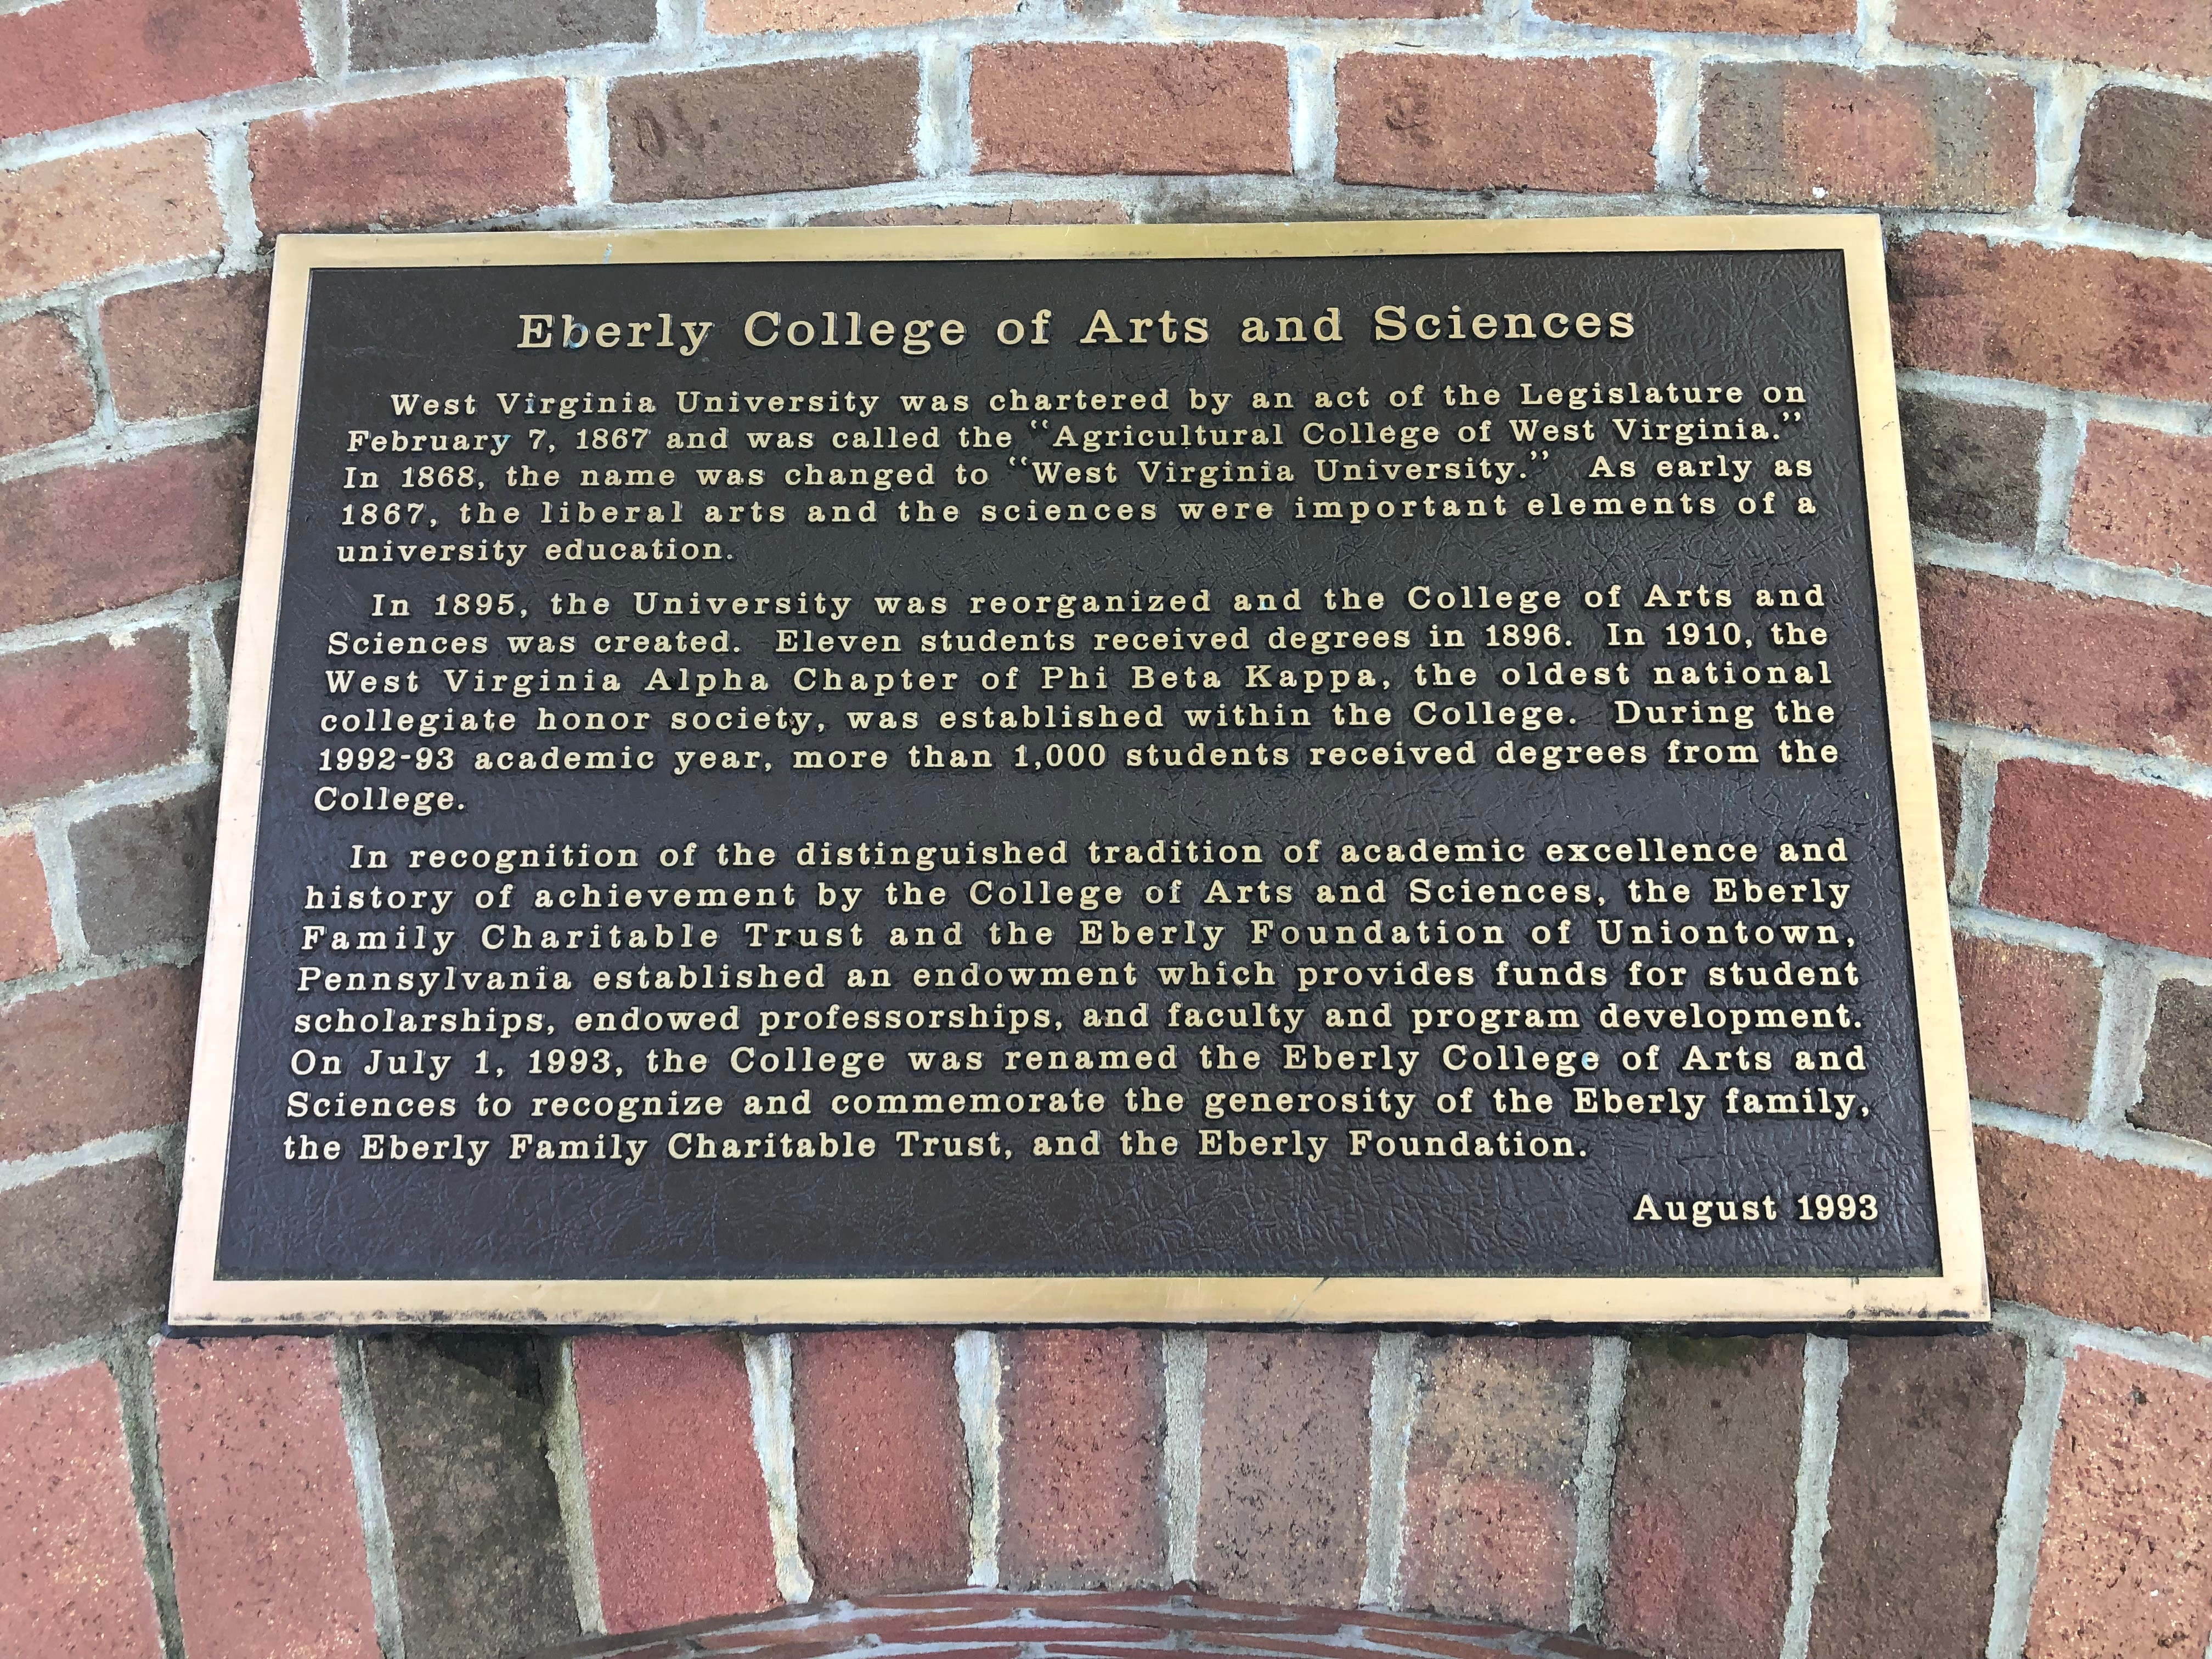 Eberly College of Arts and Sciences Marker